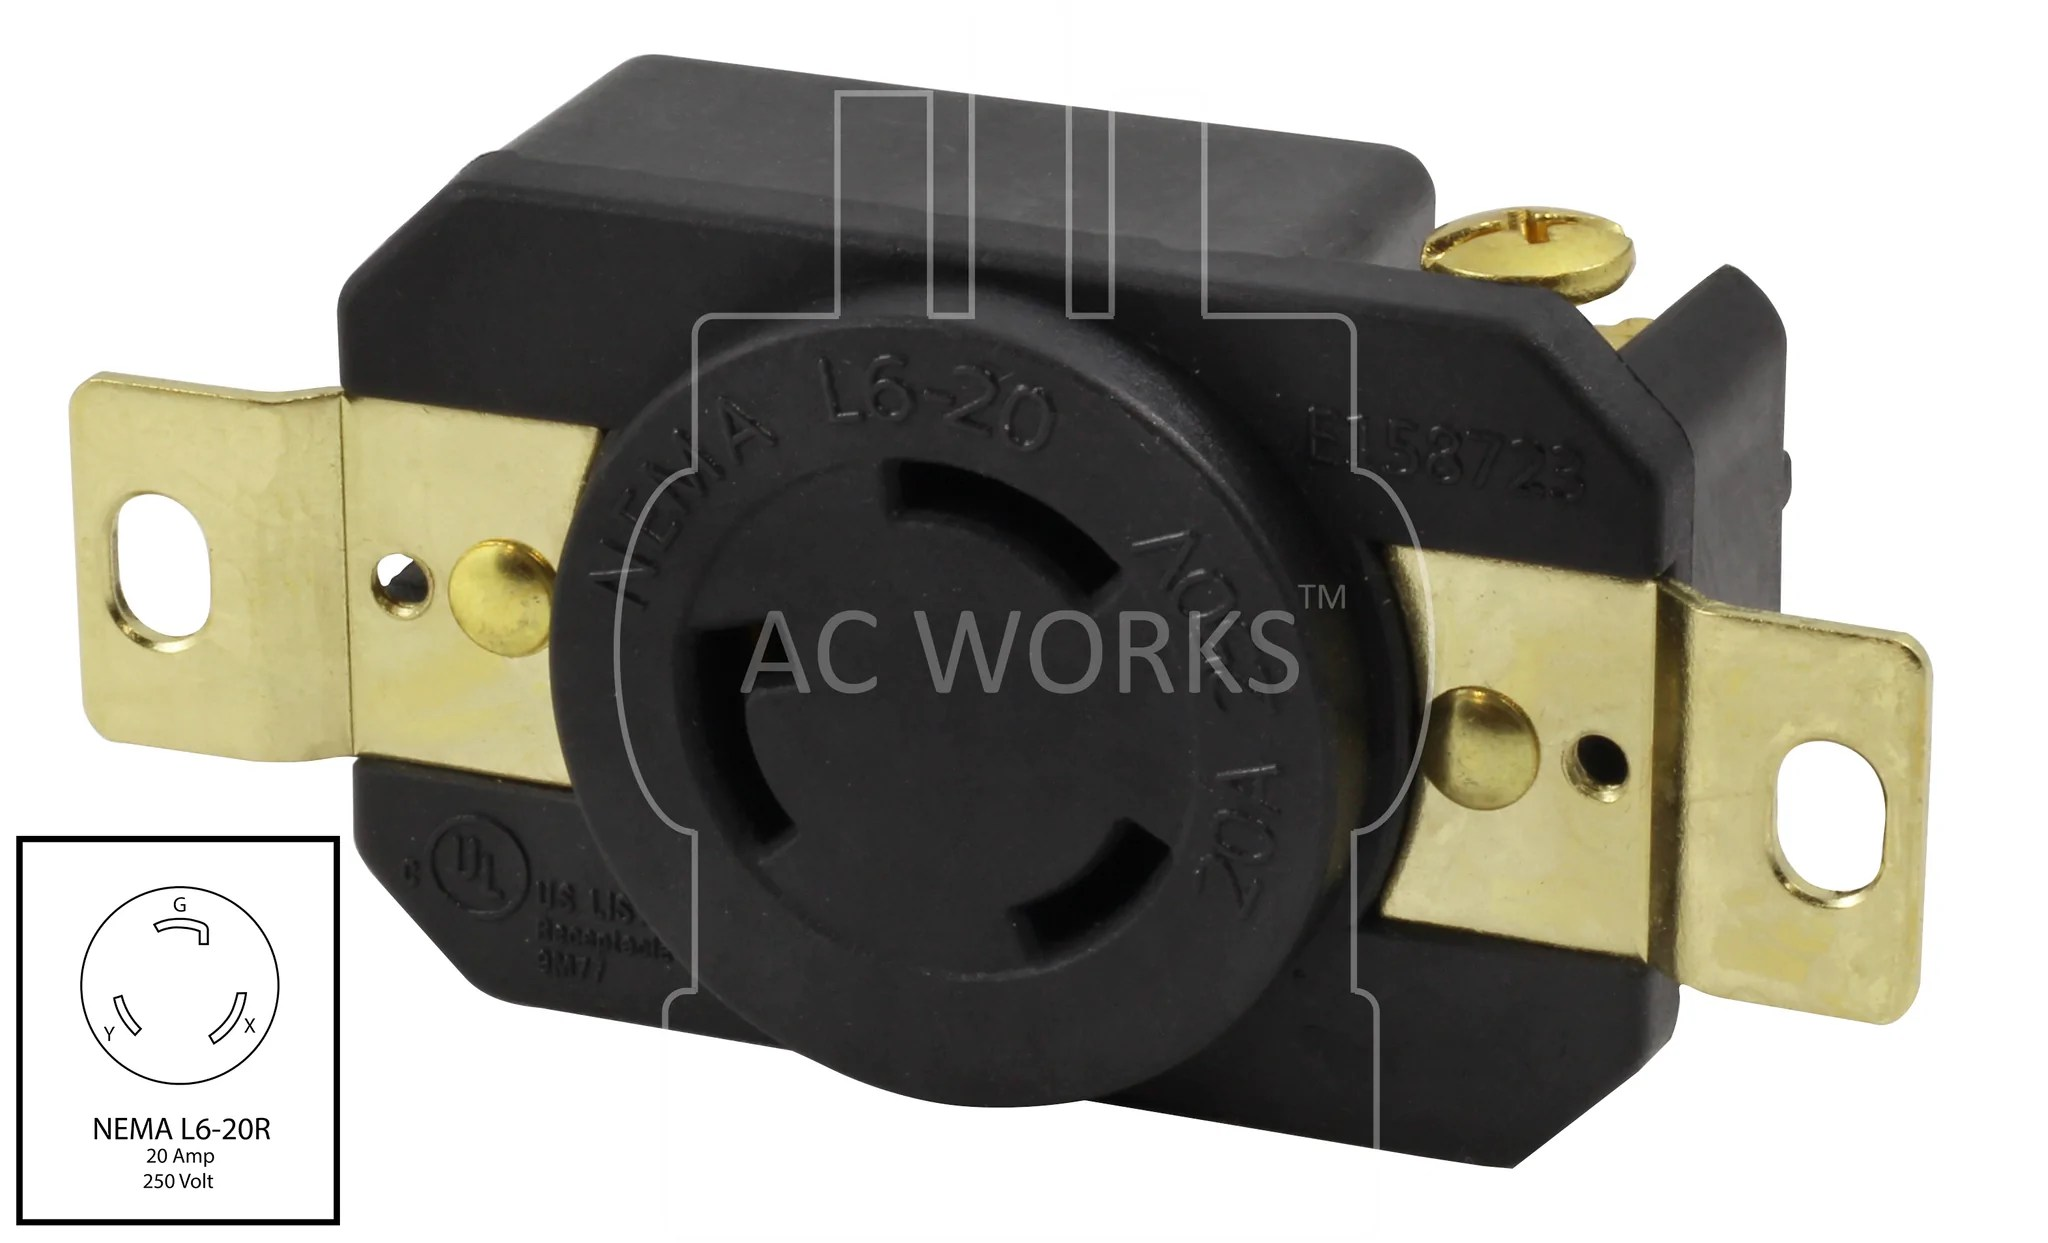 small resolution of  ac works nema l6 20r l620 receptacle l620 replacement outlet diy